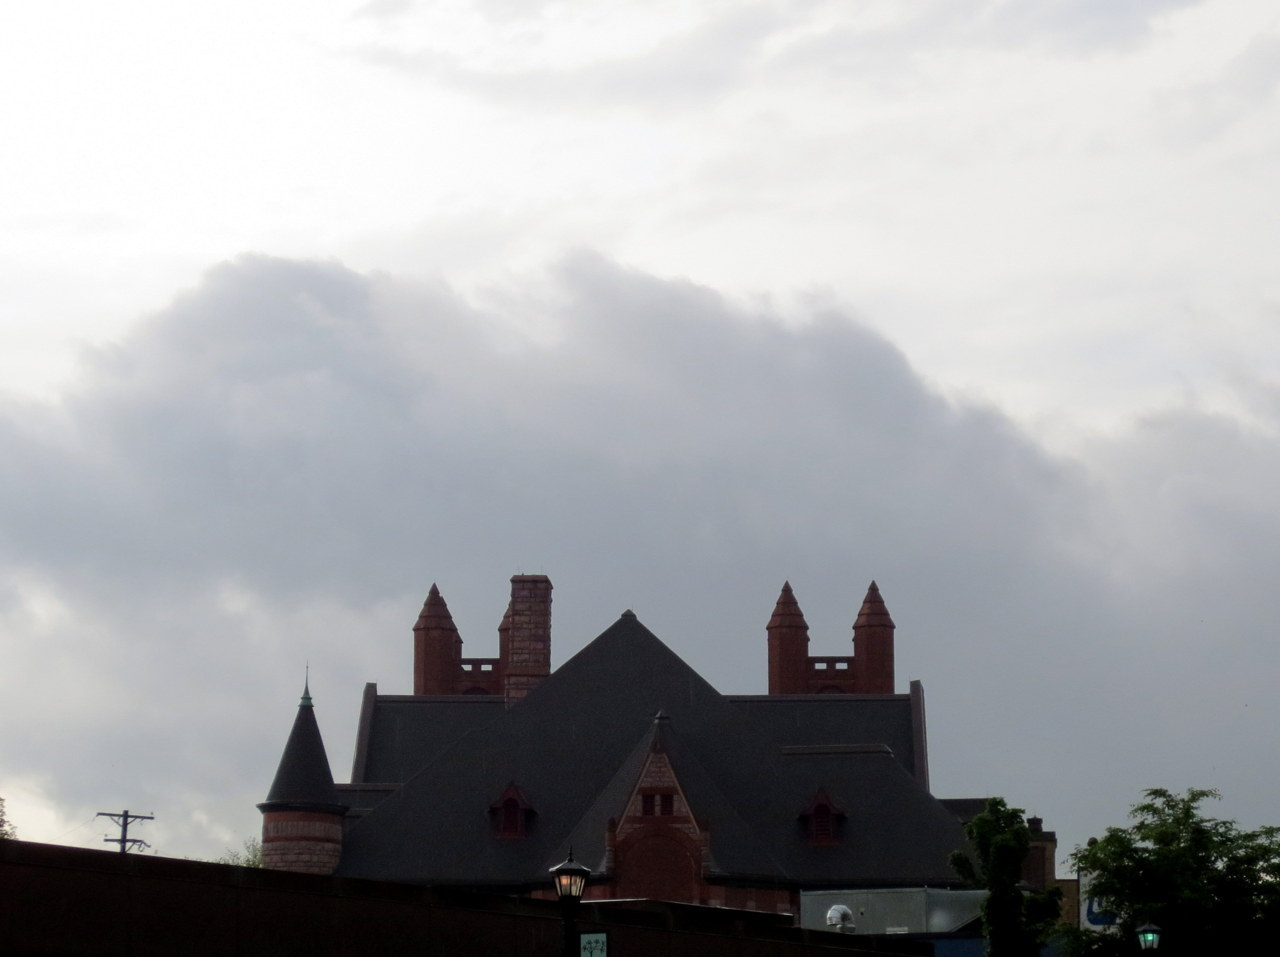 Minneapolis has its own castles in its own skies.